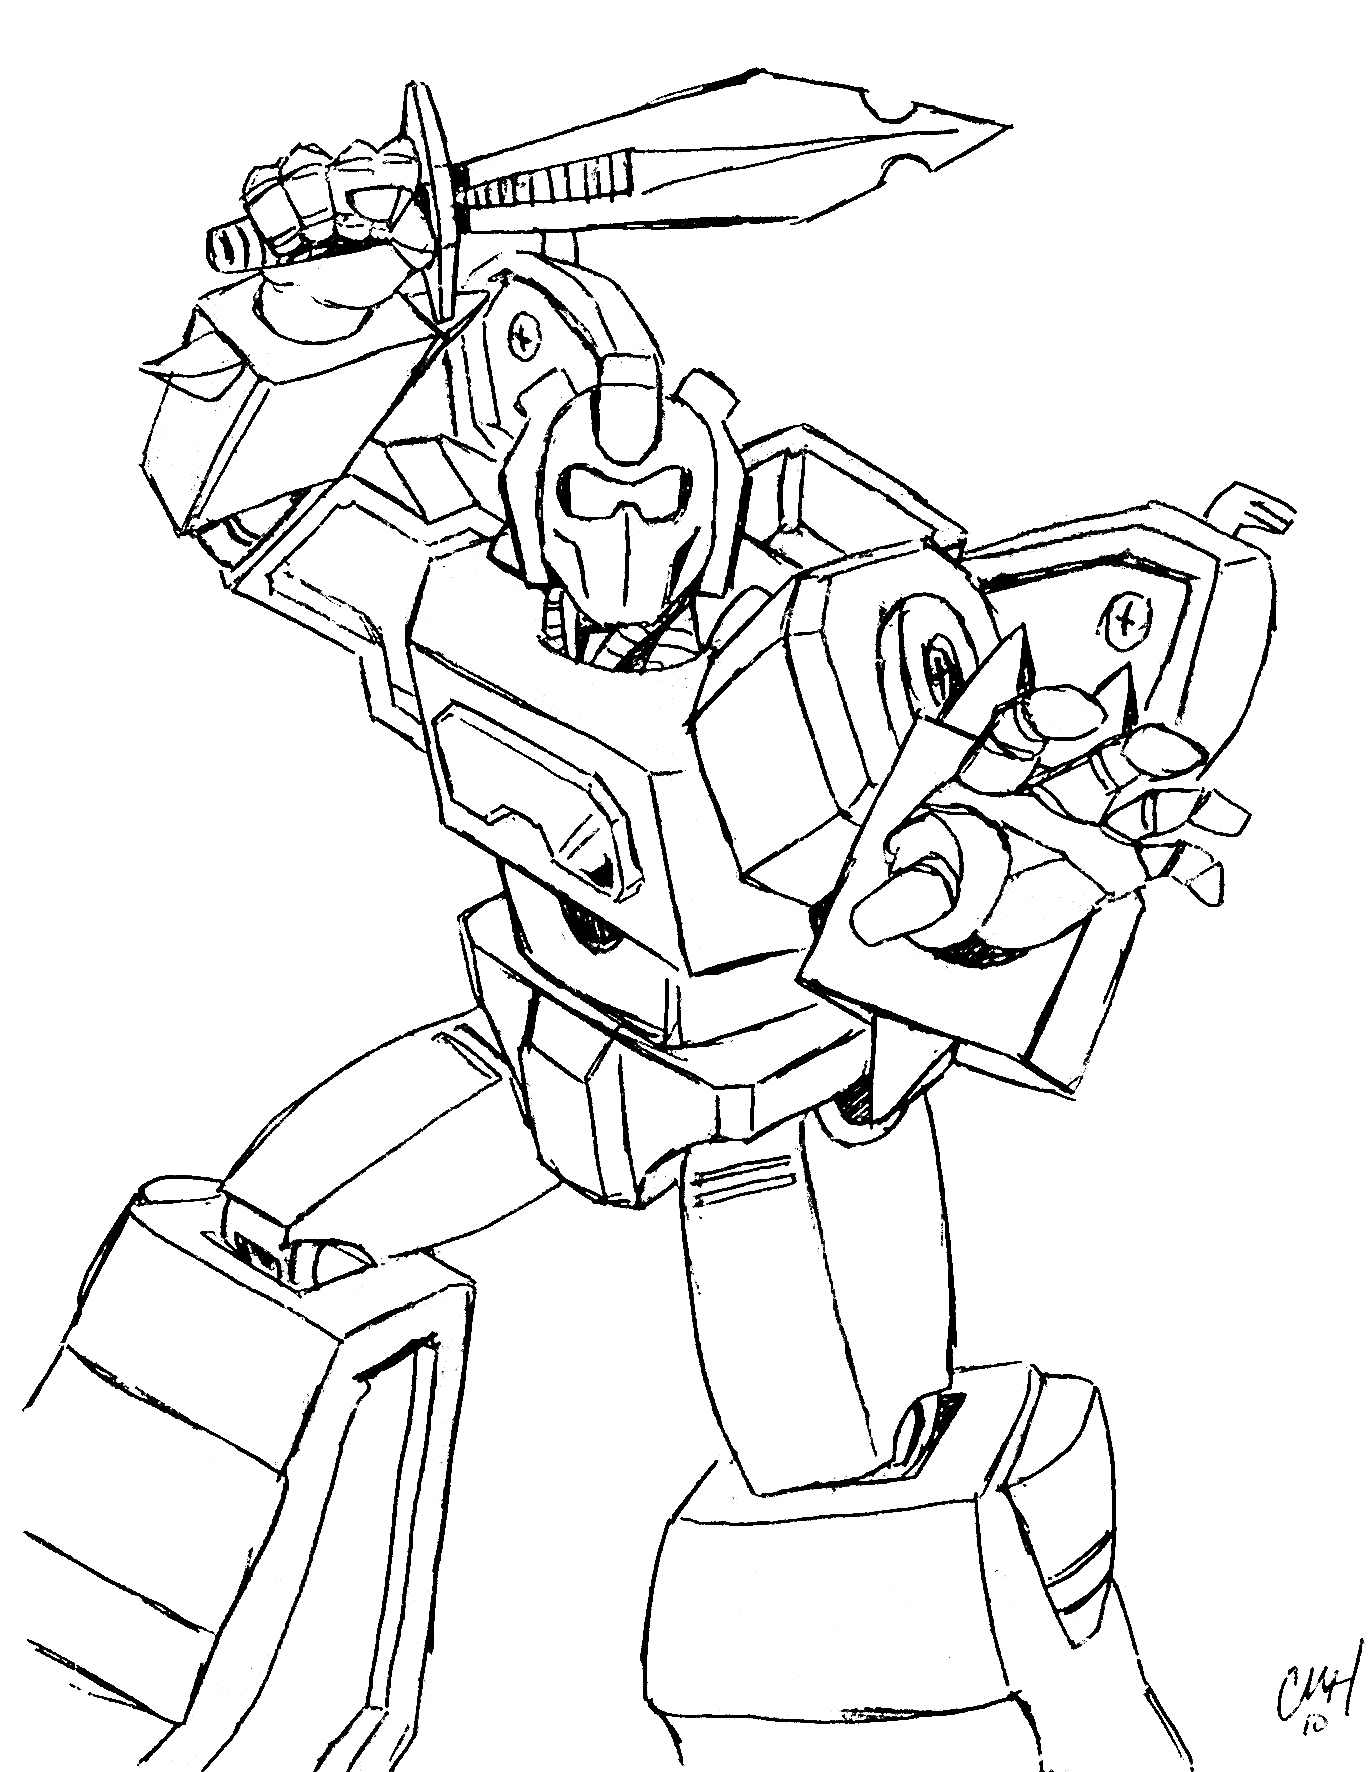 Free Printable Transformers Coloring Pages For Kids - Transformers 4 Coloring Pages Free Printable